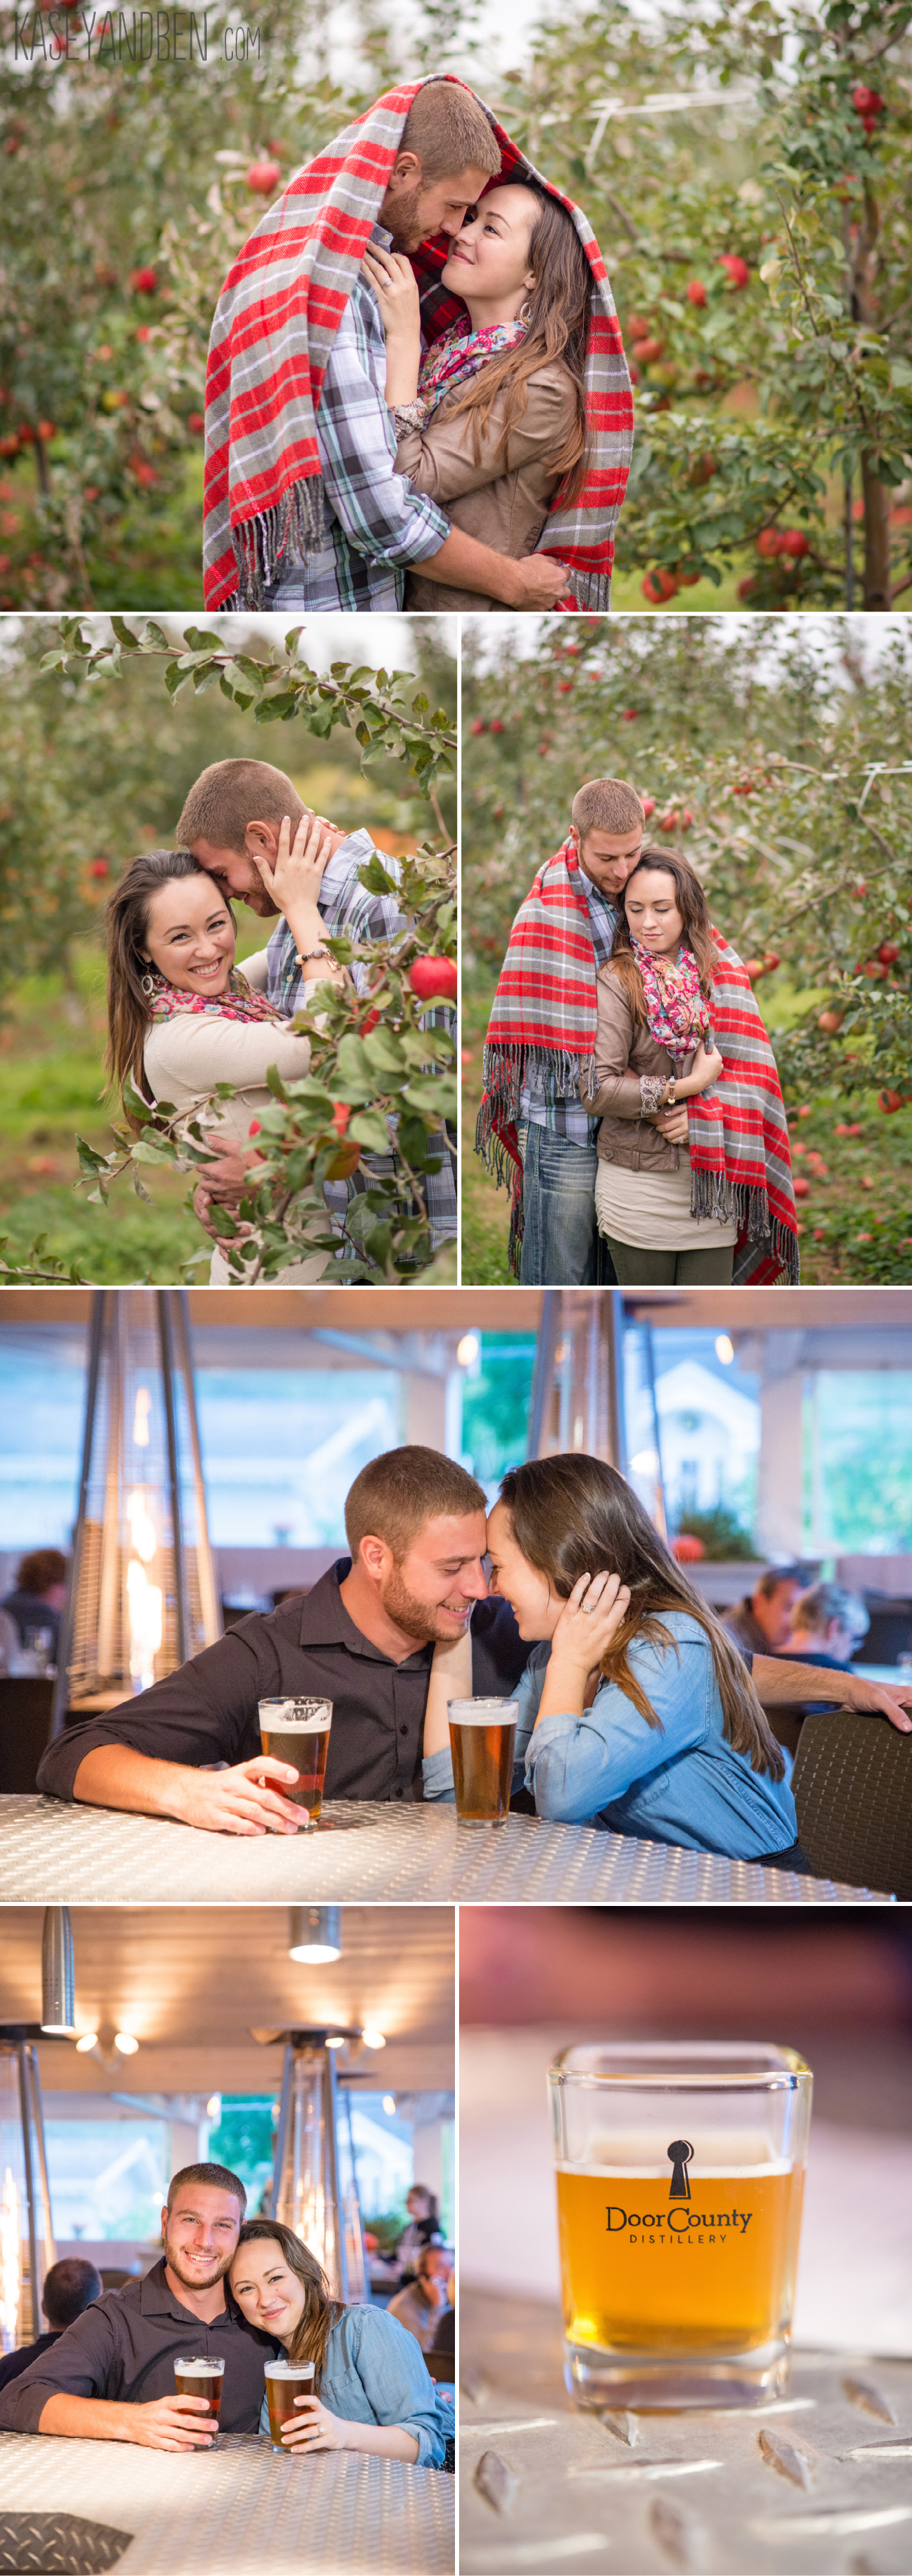 Apple-Orchard-Door-County-Lautenbach-Engagement-Wedding-Photography-Junipers-Gin-Joint-Fish-Creek-Wine-2